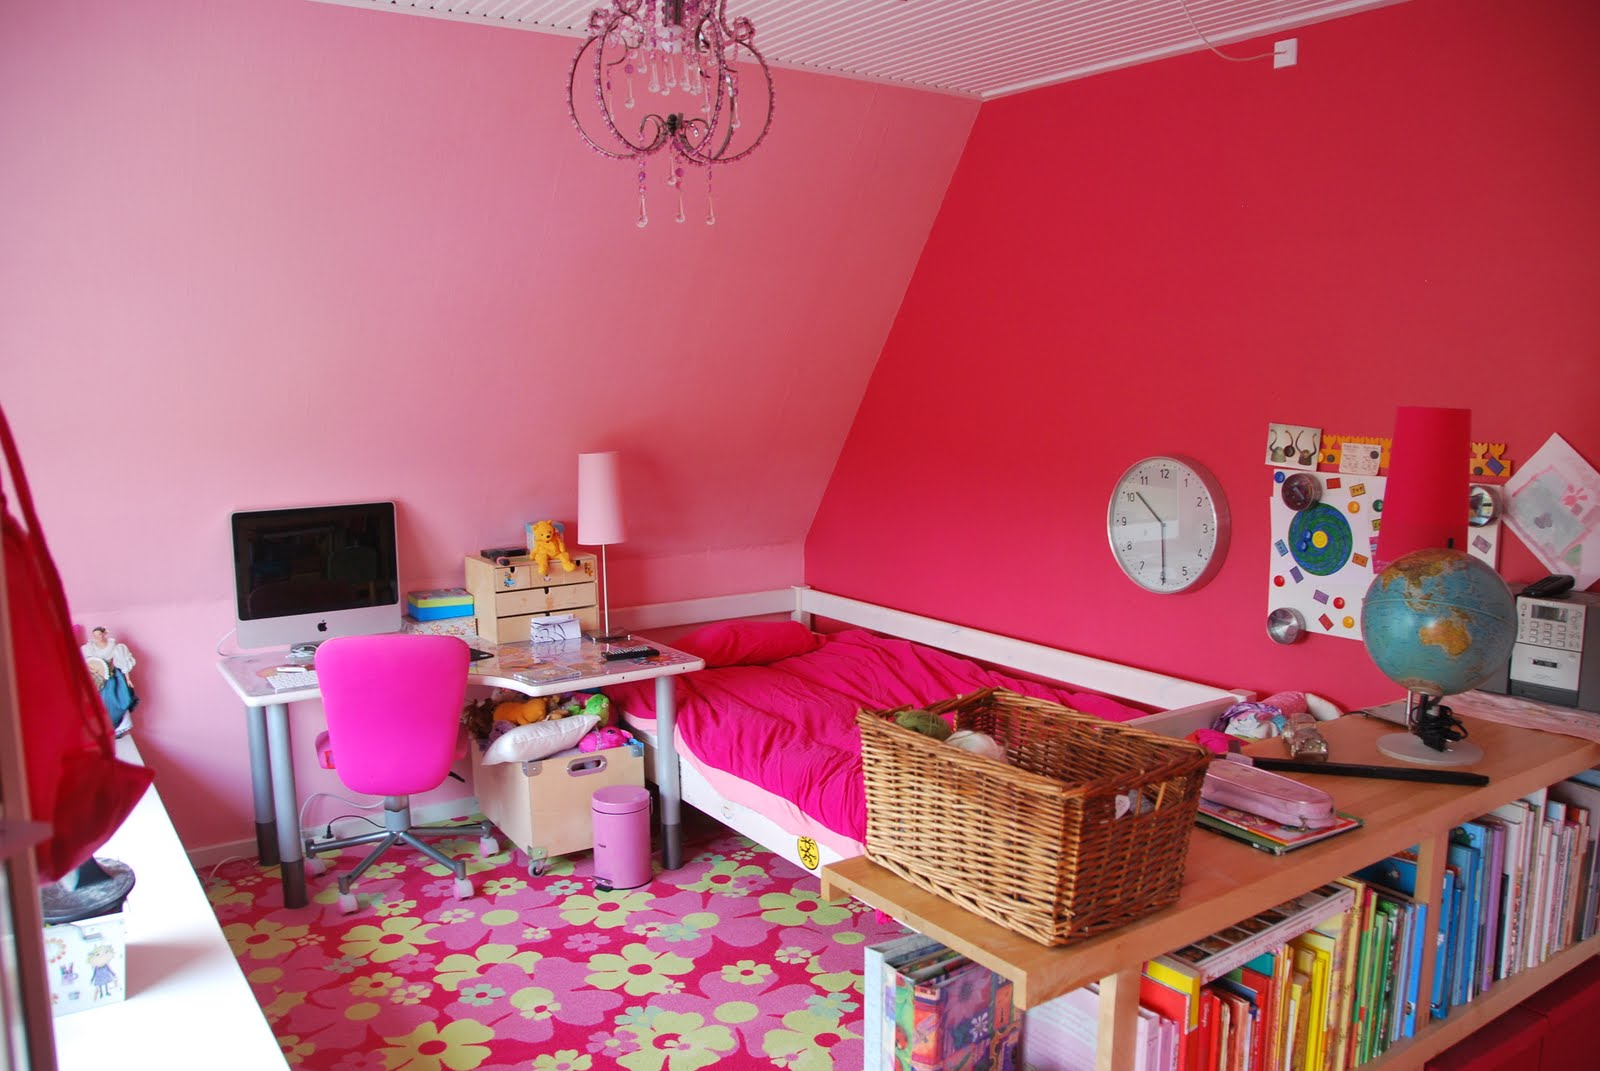 Girls bedroom furniture bedroom furniture high resolution - Photos of girls bedroom ...